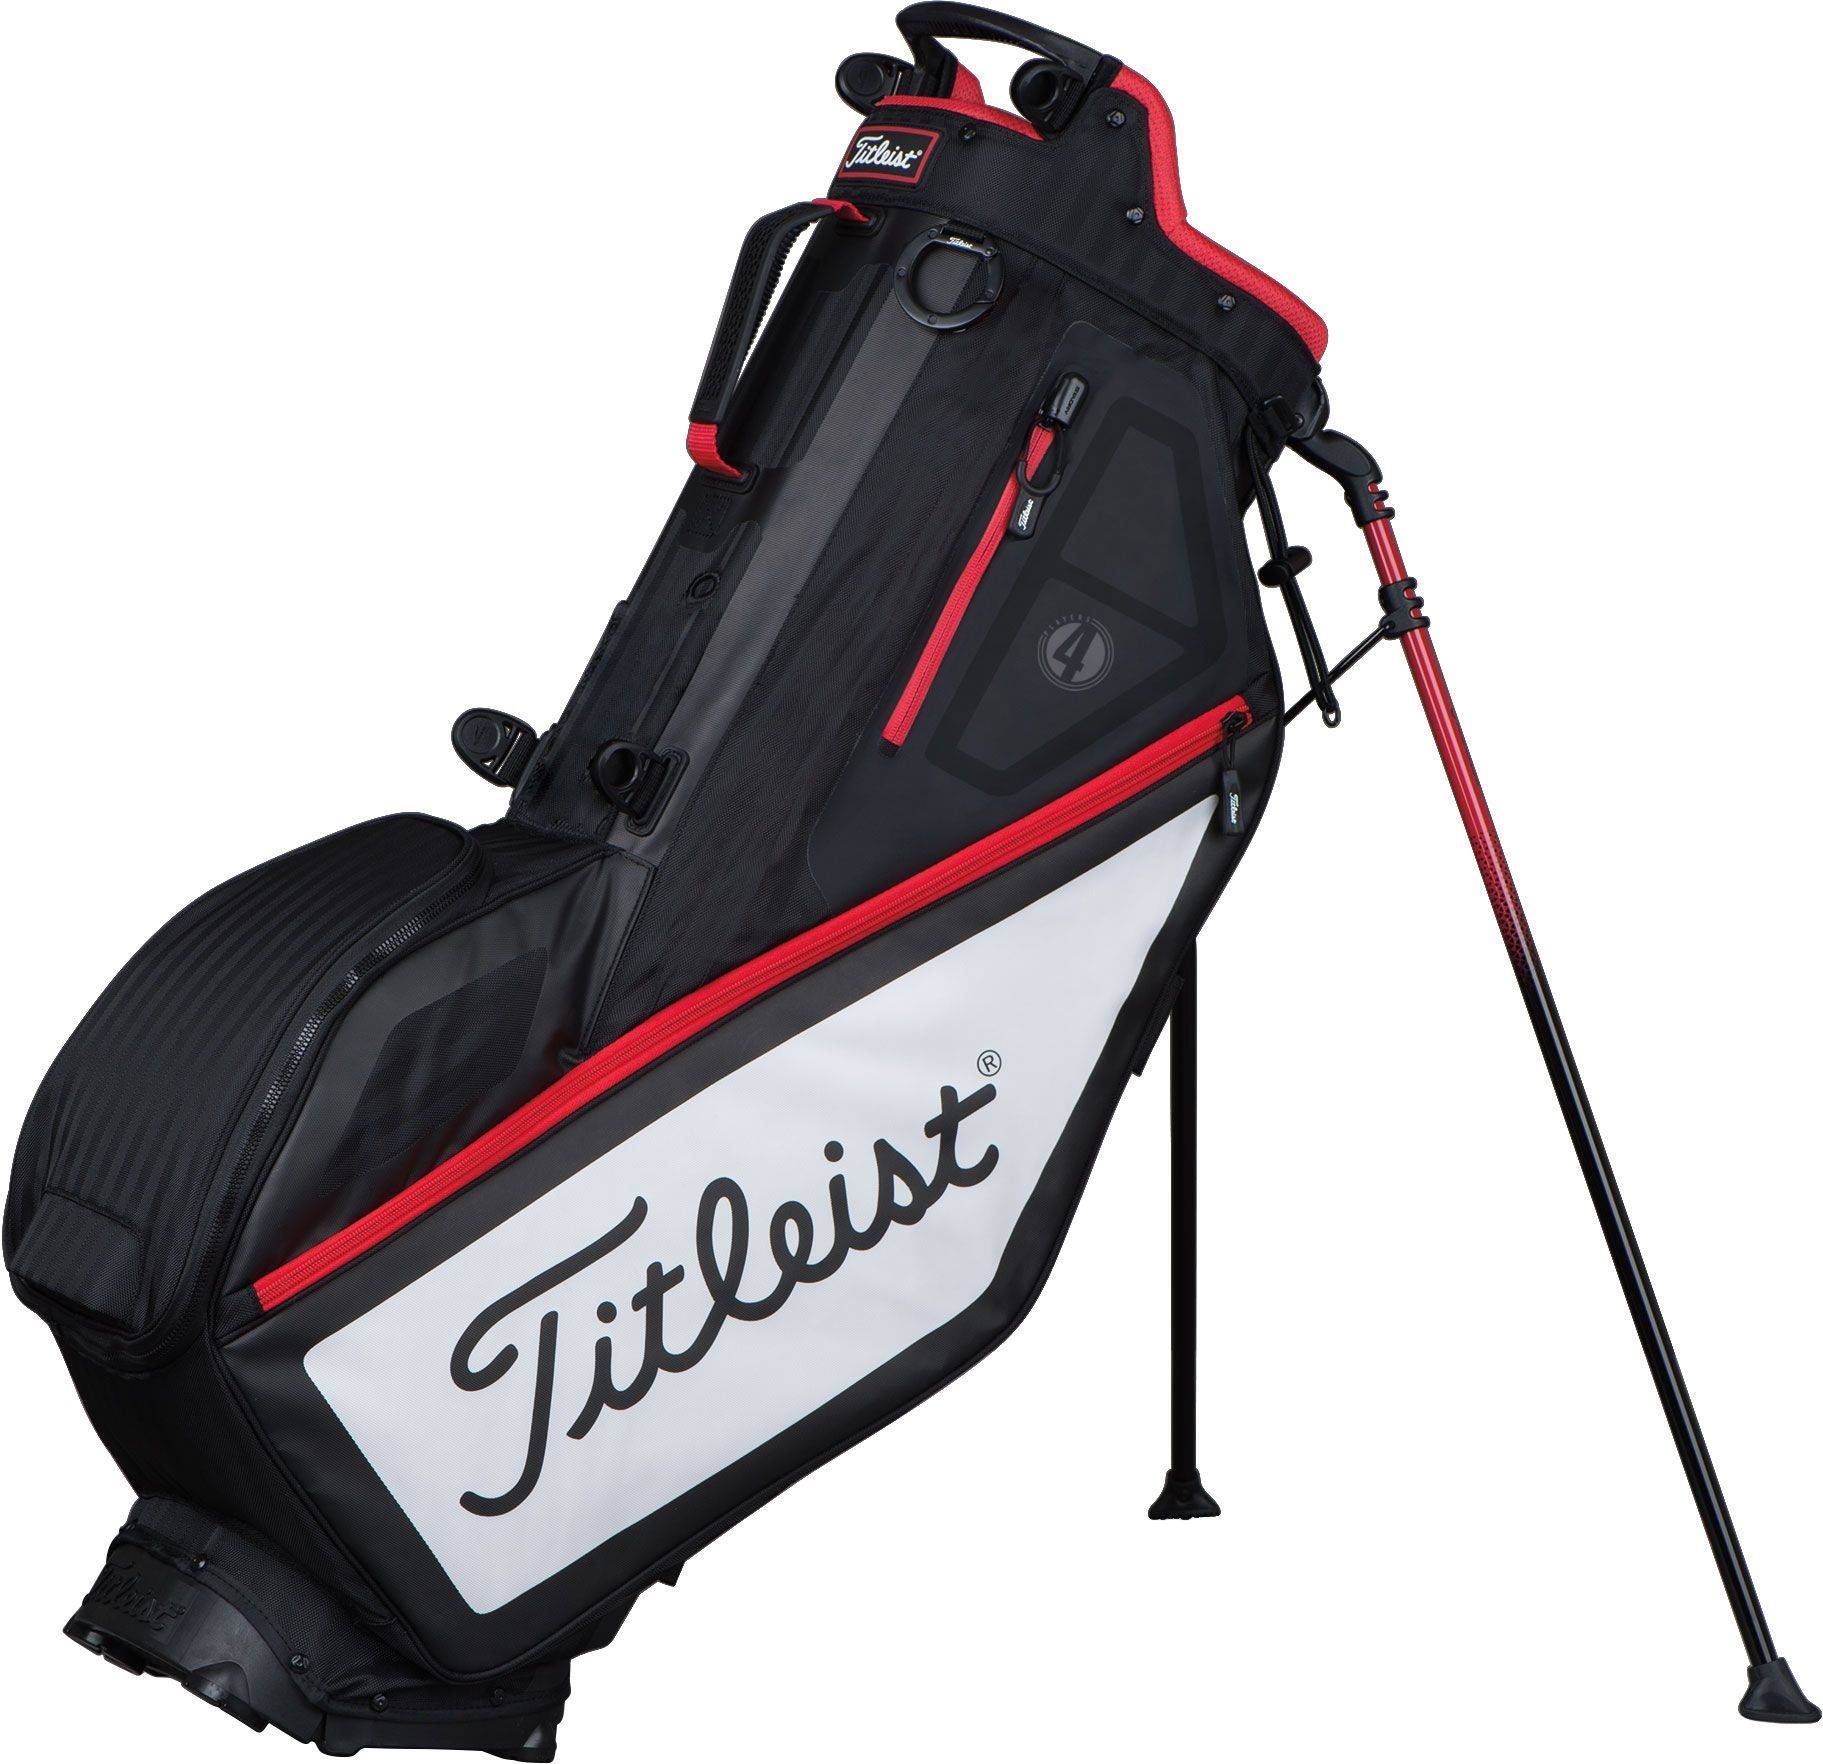 Titleist 2017 Players 4 Stand Bag, Black (With images